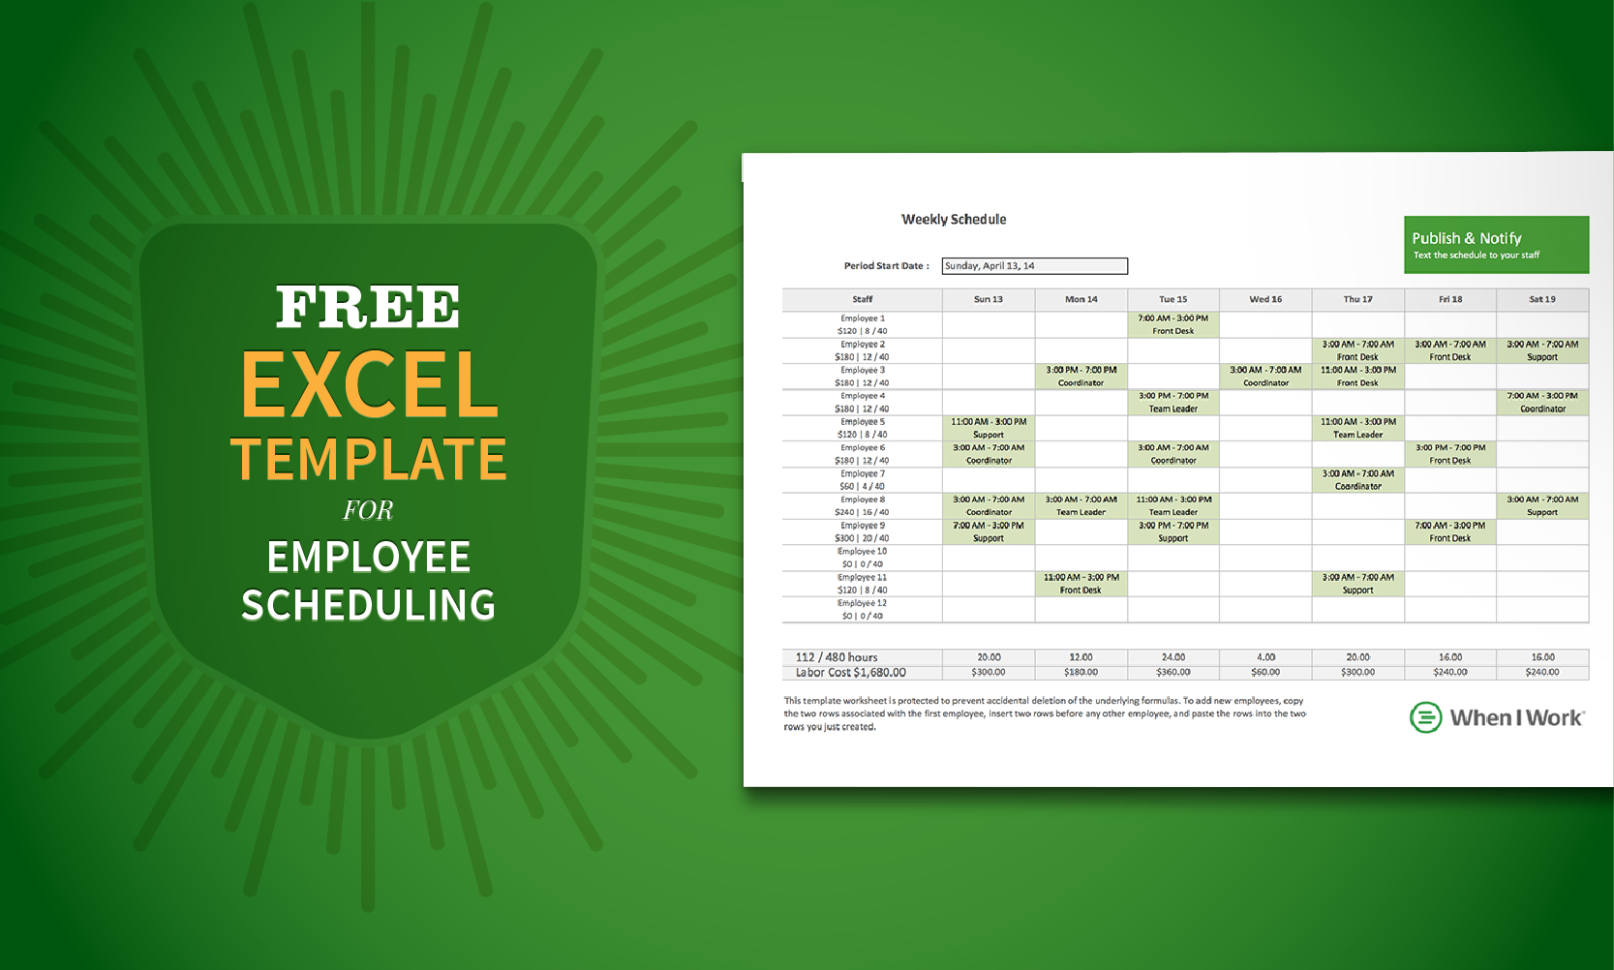 Employee Labor Cost Spreadsheet In Free Excel Template For Employee Scheduling  When I Work